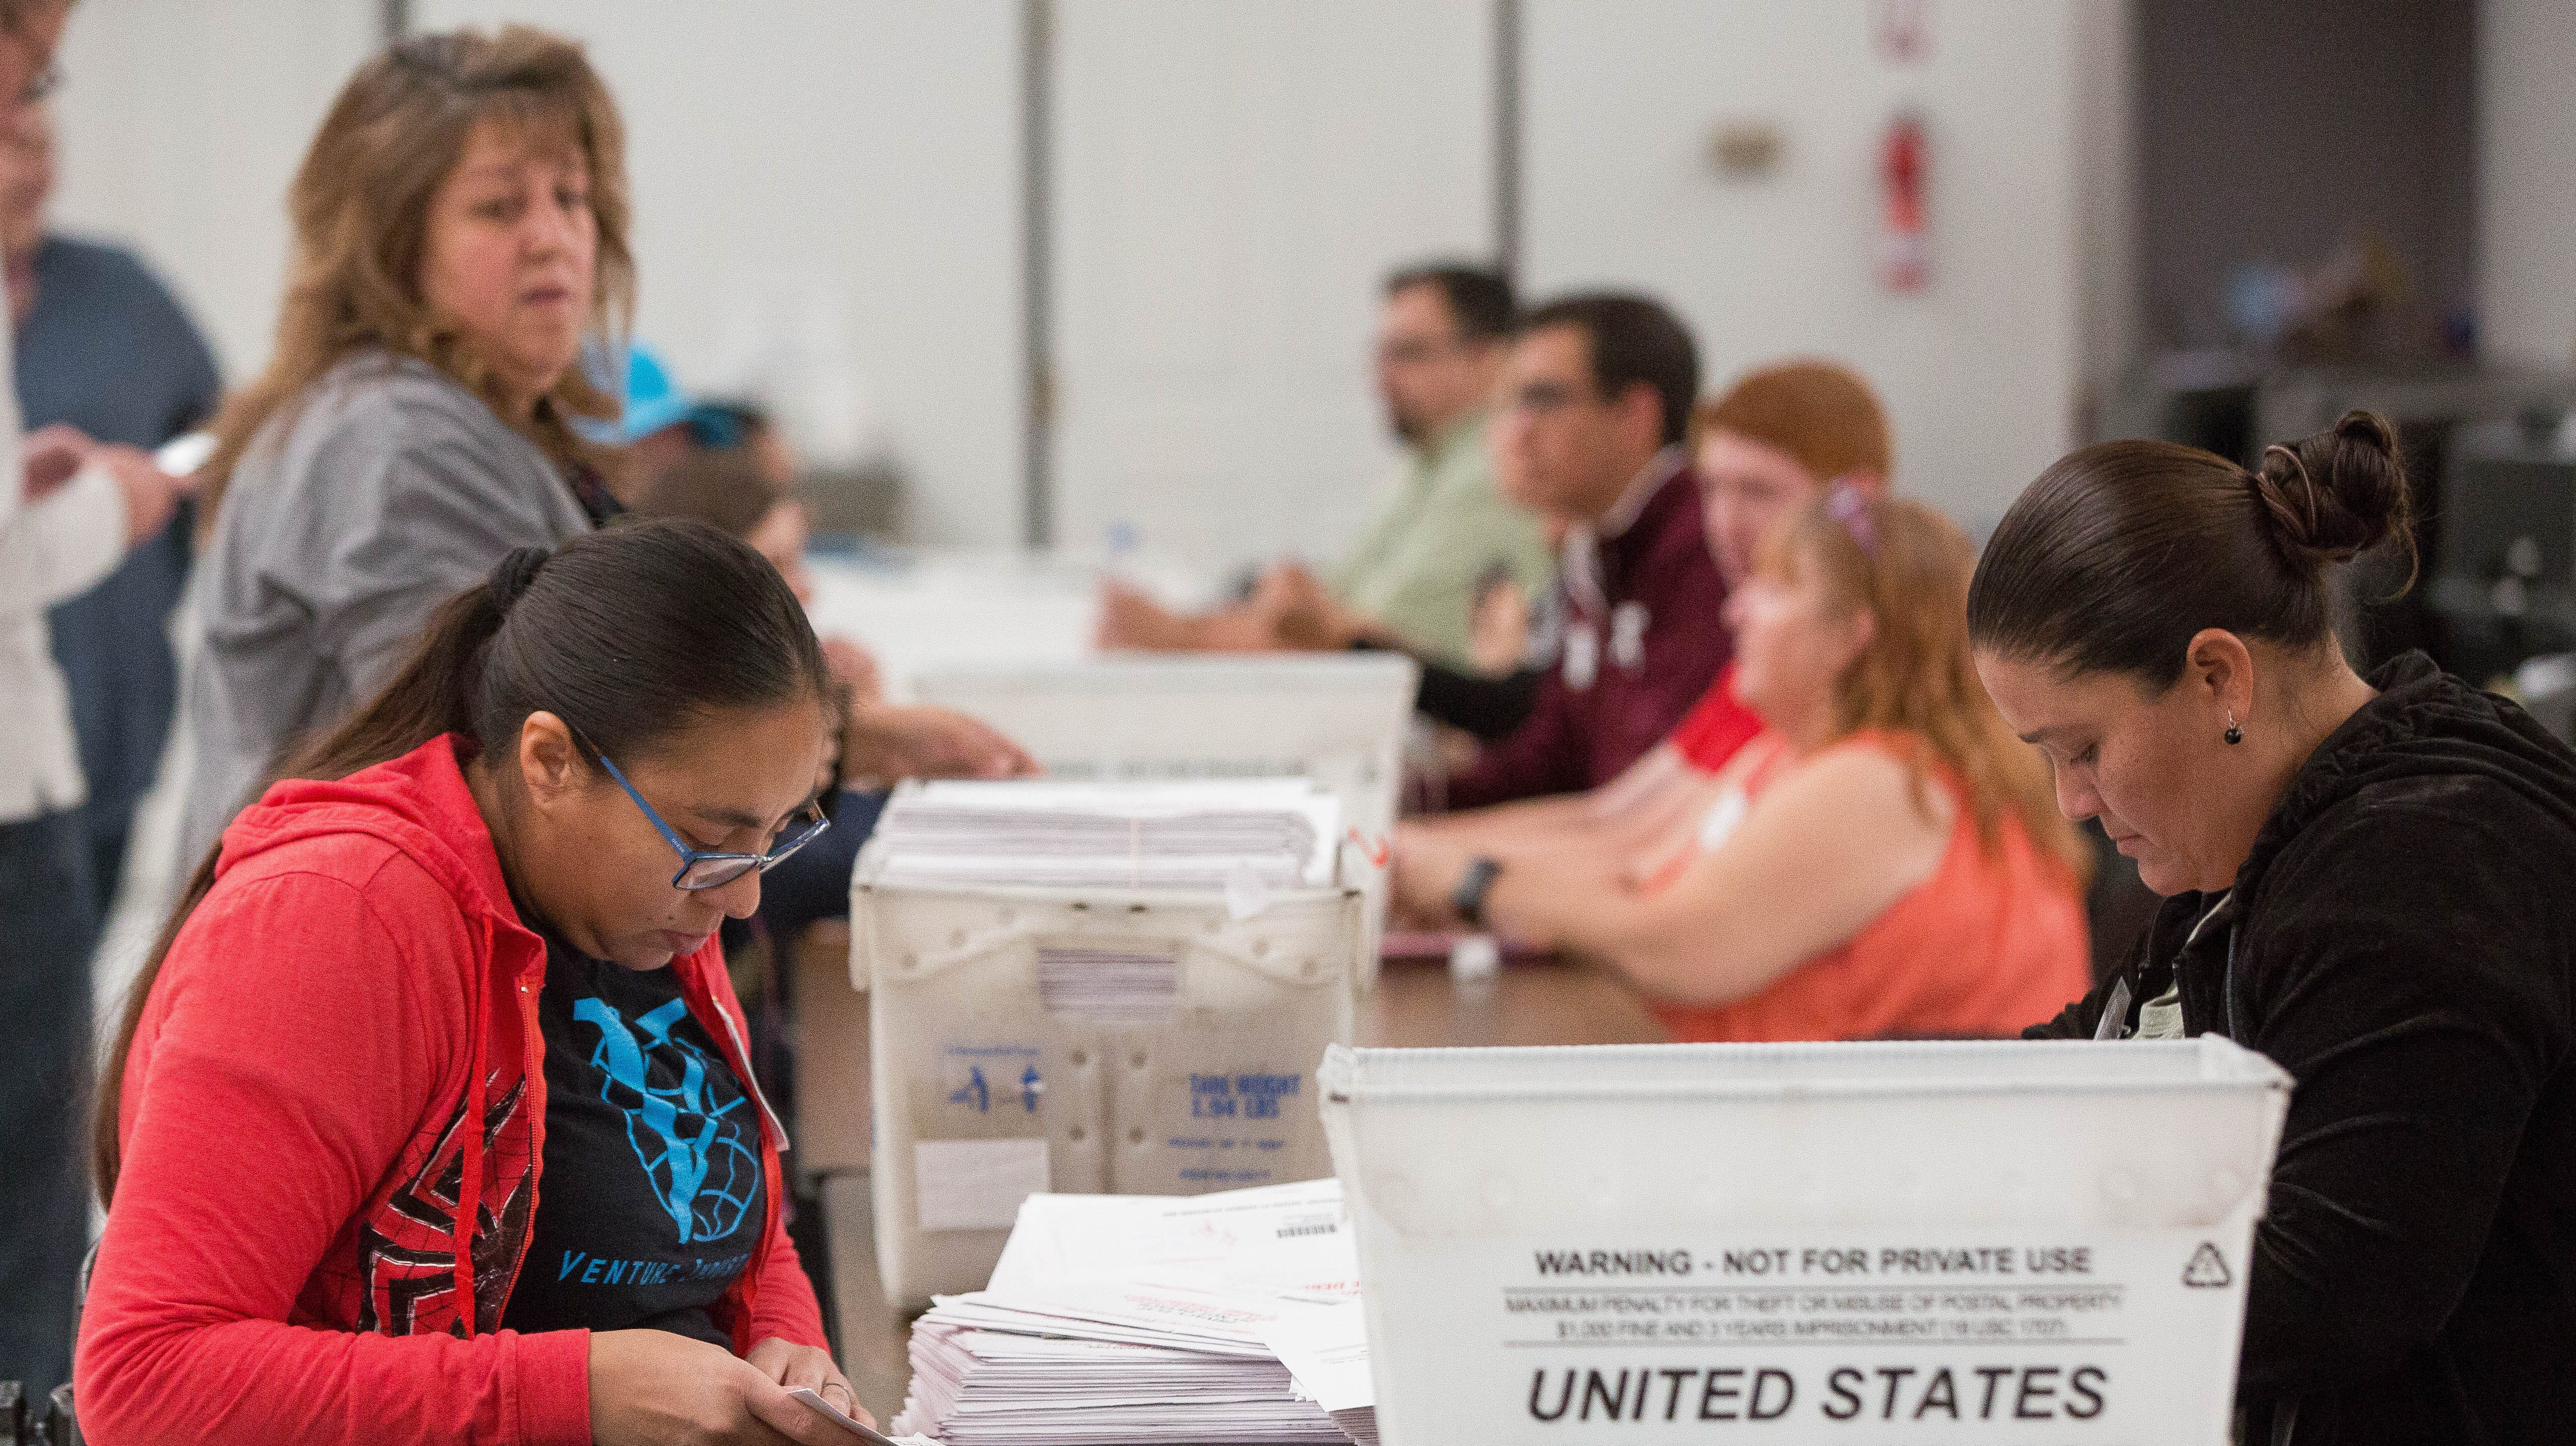 Seventeen poll workers scan, qualify and count 4,000 absentee ballots on Wednesday, Nov. 7, 2018, at the Doña Ana County Bureau of Elections Warehouse. The ballots are those remaining from a pool of more than 8,000 that have yet to be factored into Doña Ana County's overall election results.